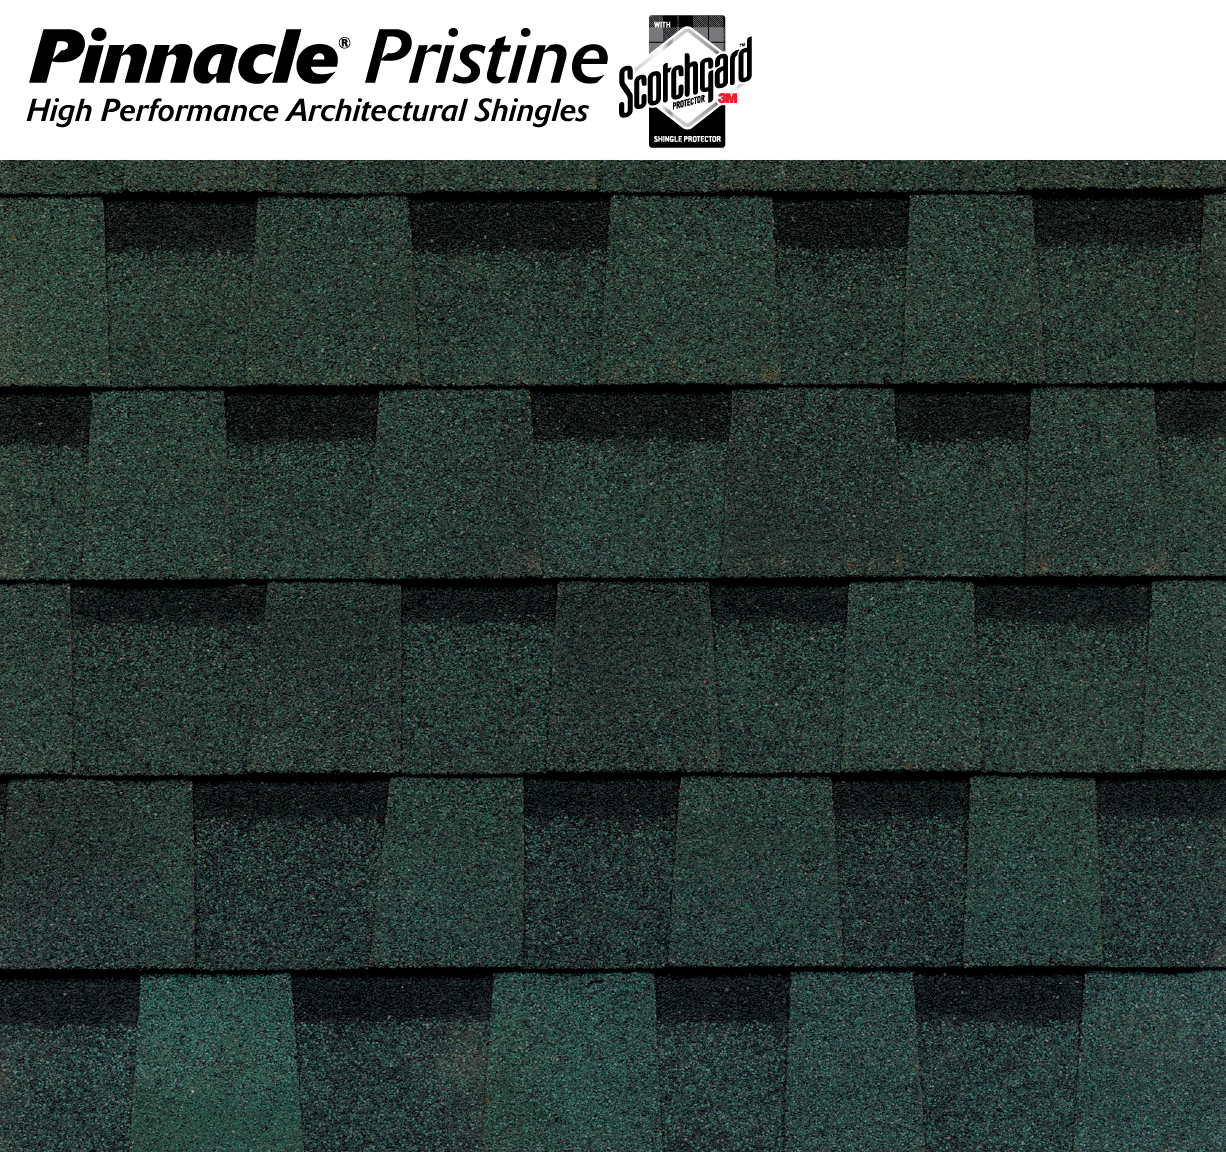 Pinnacle Scotchgard Pristine Green